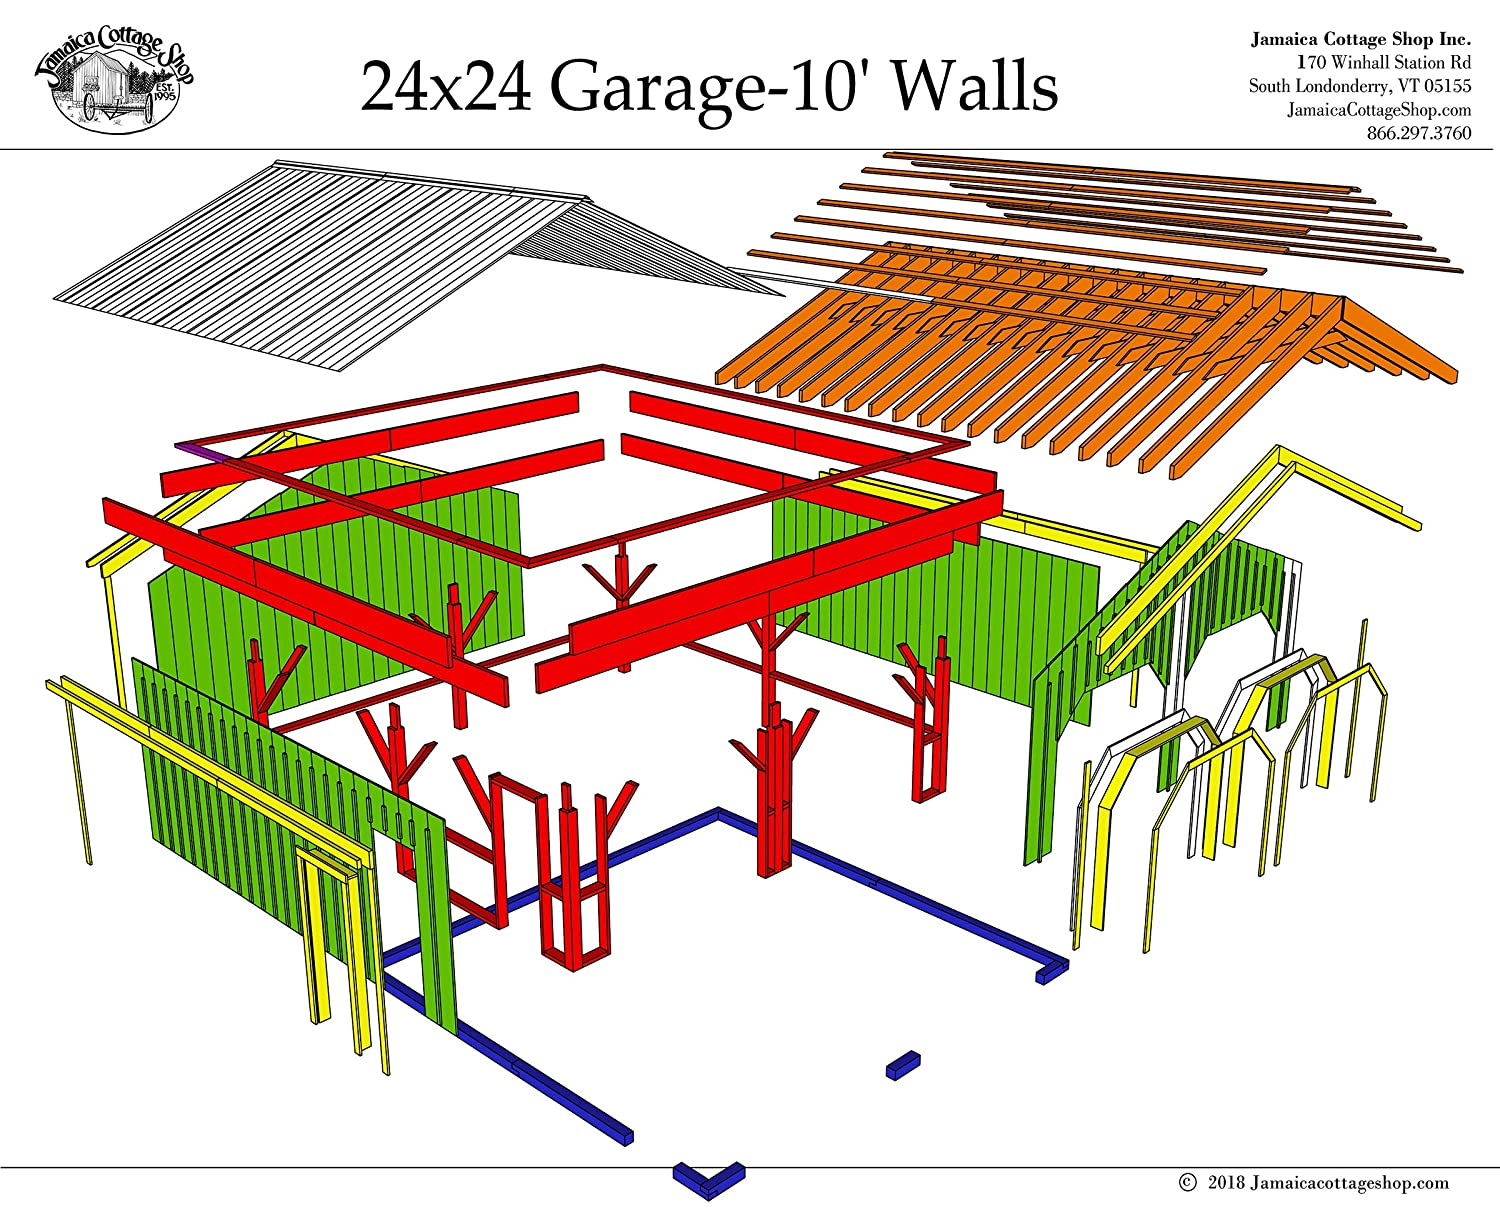 24x24 Timber Frame Post & Beam Garage Plans with 10' Wall